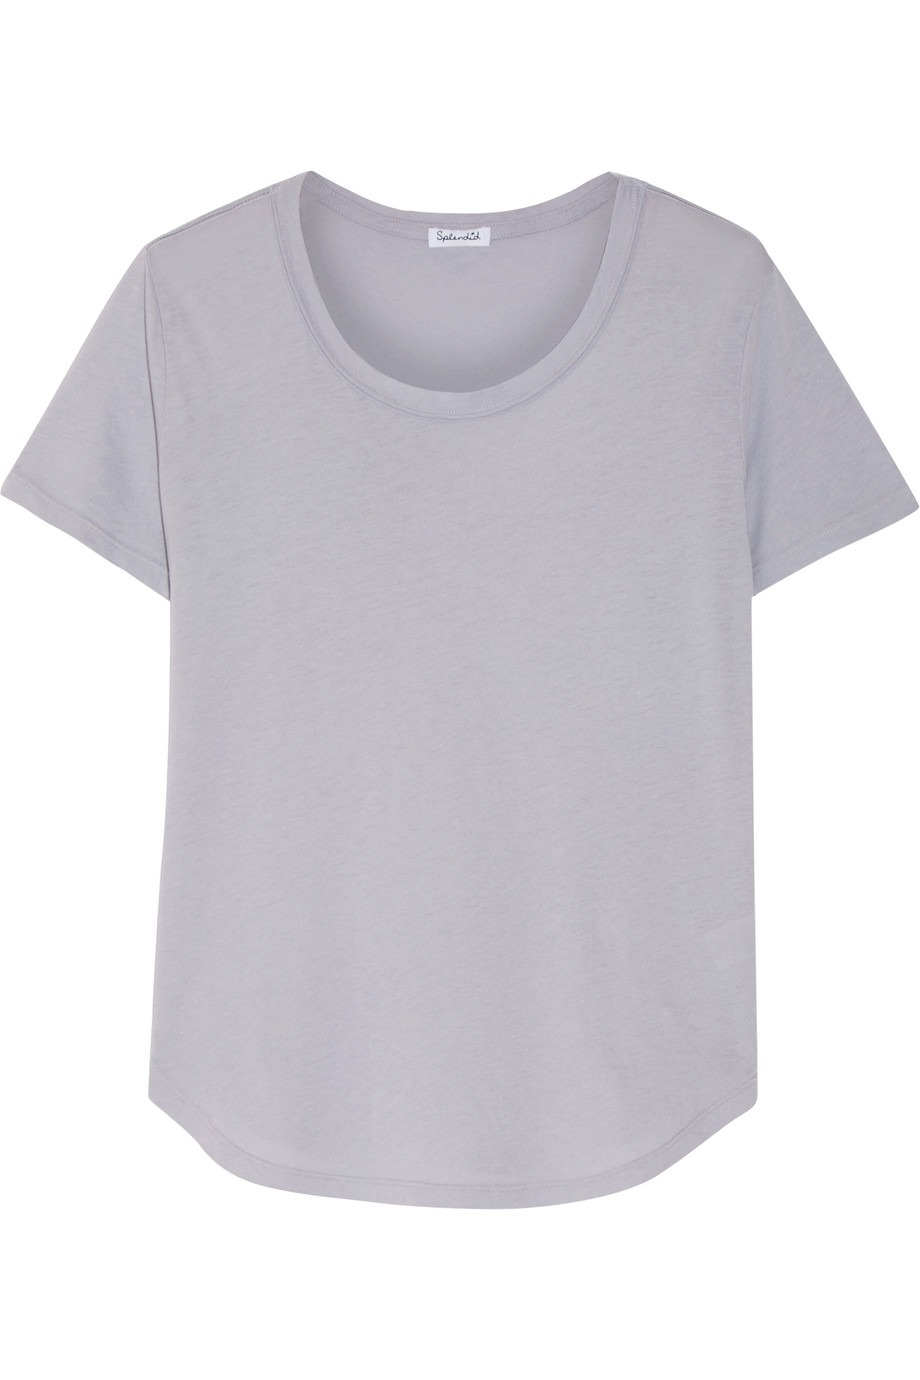 Splendid Supima Cotton and Micro Modal-Blend Jersey T-Shirt, Light Gray, Women's